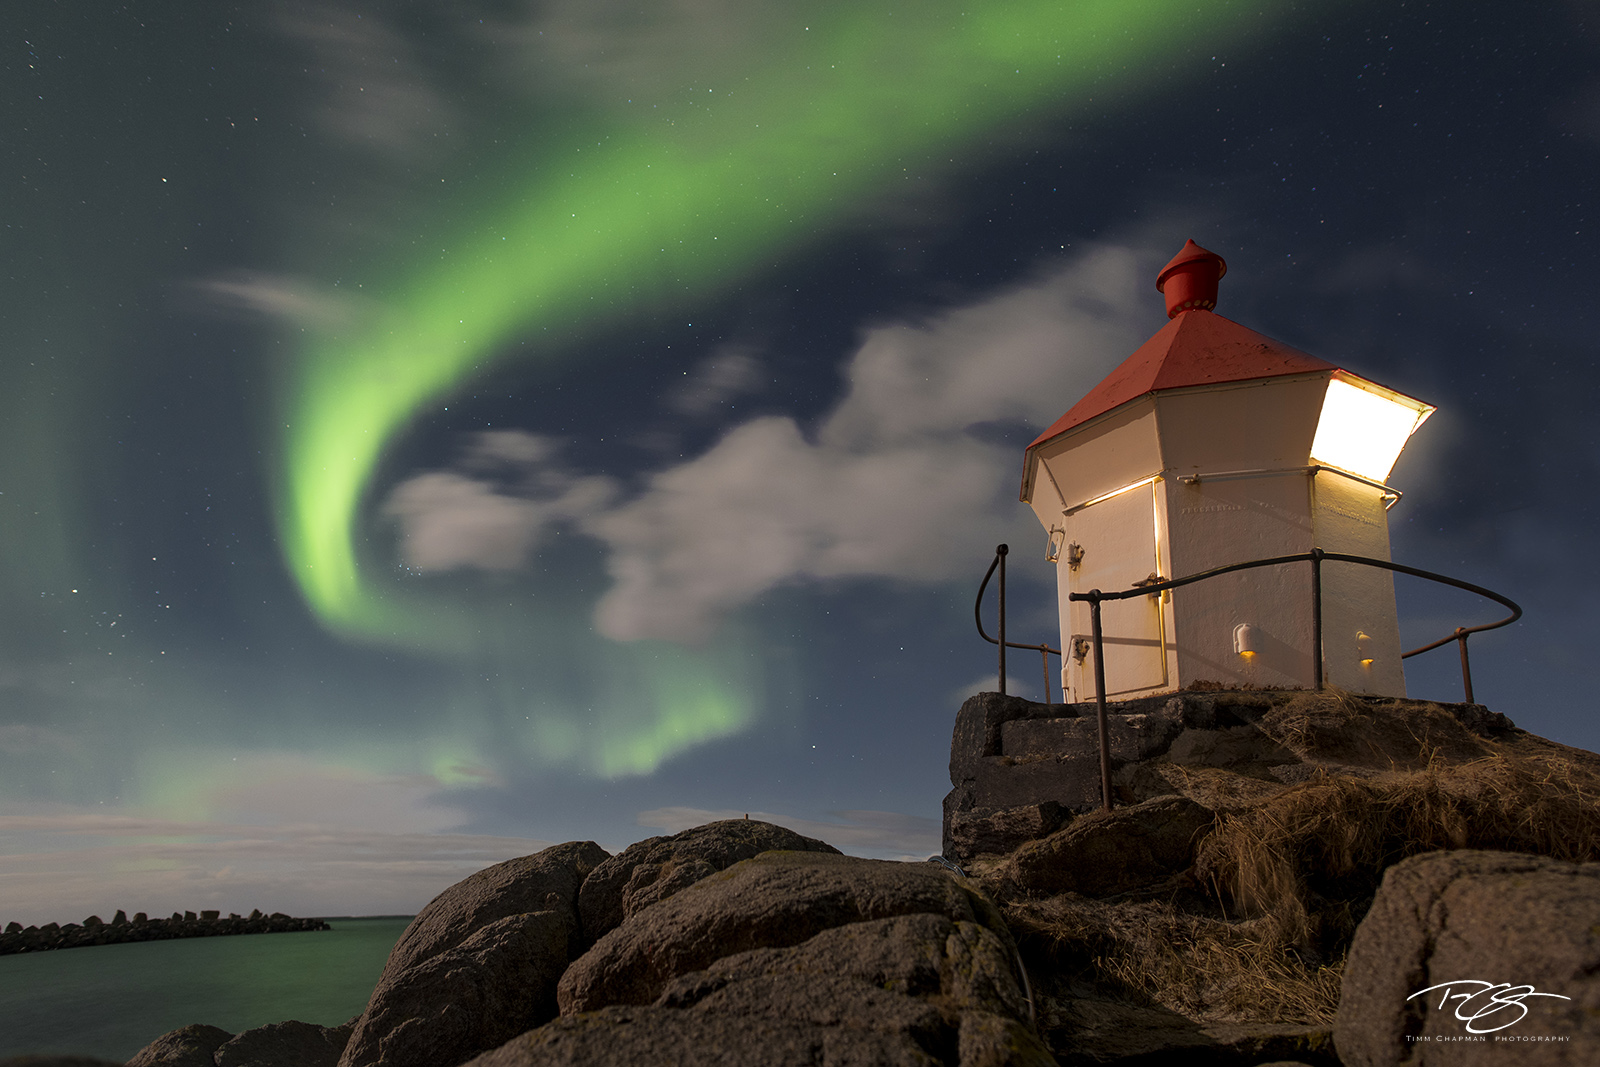 lofoten, northern lights, aurora, borealis, aurora borealis, aurora australis, lighthouse, light, night, sky, swirling light, green, solar flare, mass coronal ejection, unstad, eggum, beach, coast, sw, photo